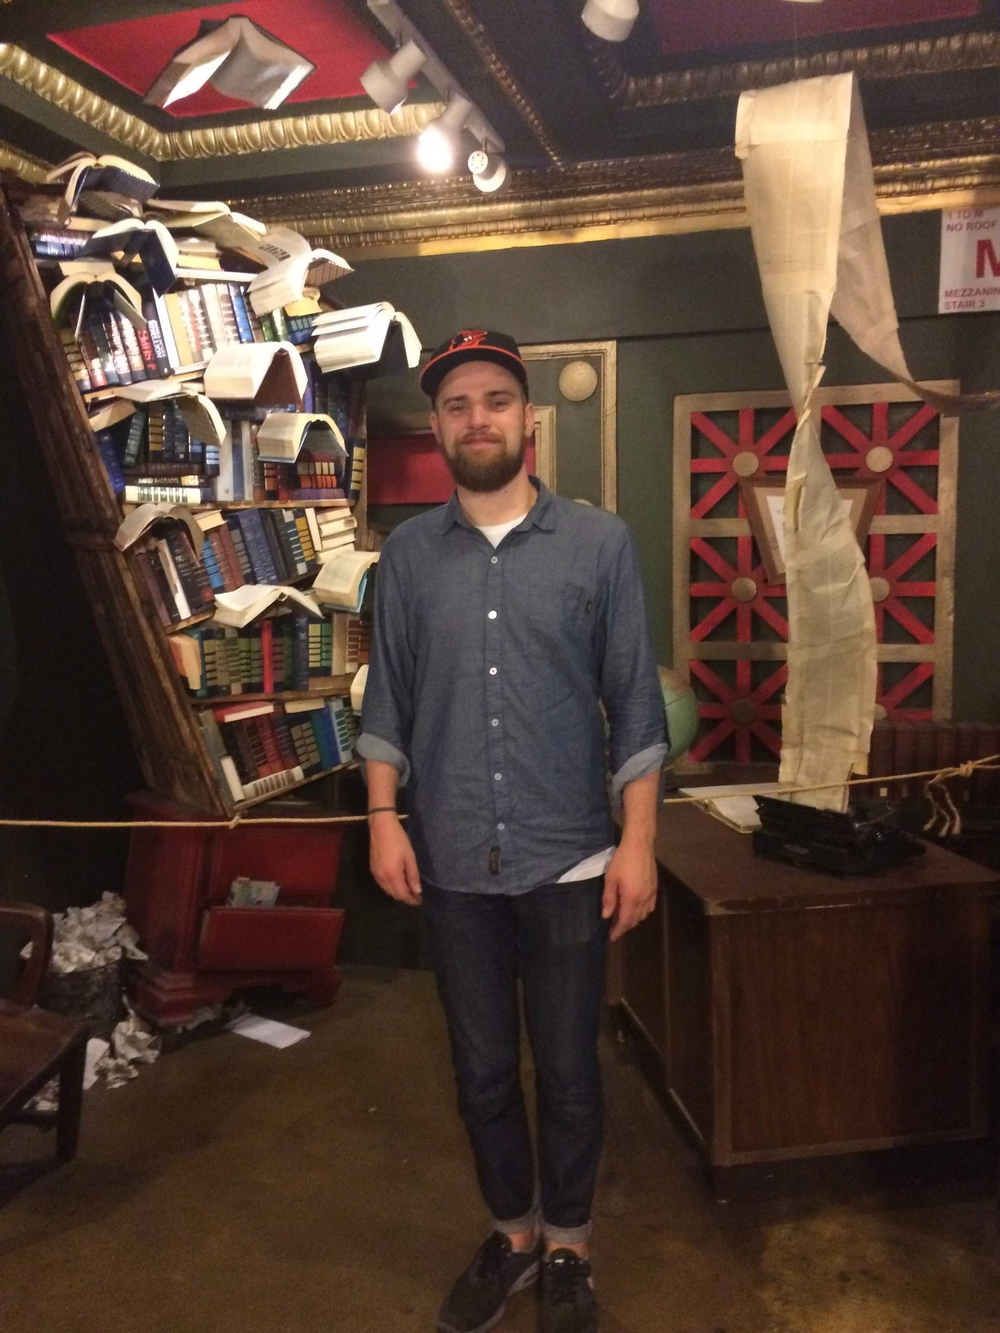 """Brian with some of the book art in the upstairs """"book labyrinth"""" at the Last Bookstore"""